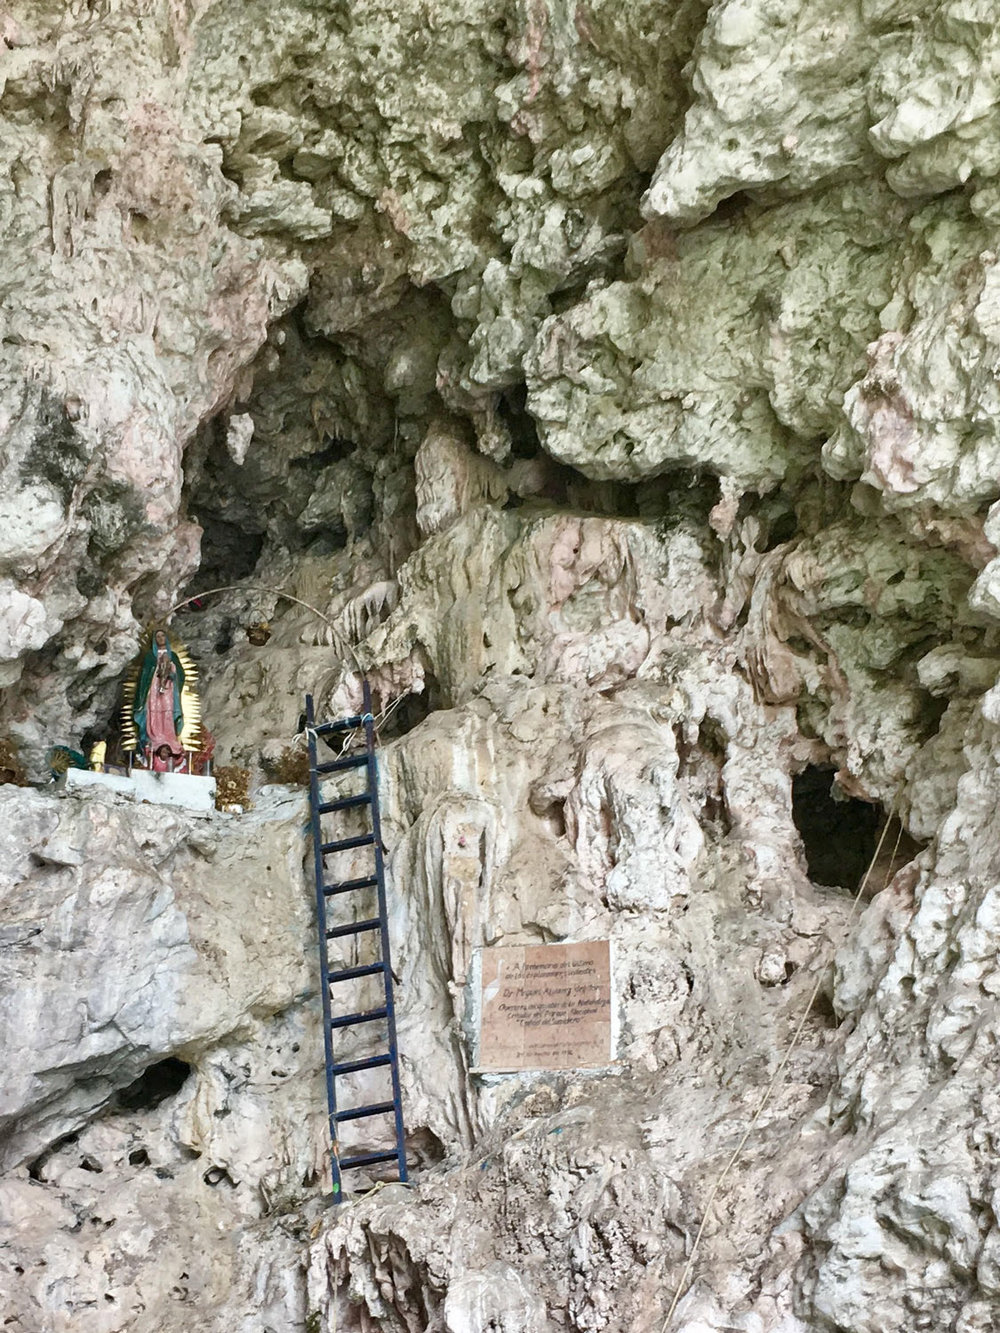 Cueva de Colores with Christ on cross. Left: the Christmas Tree